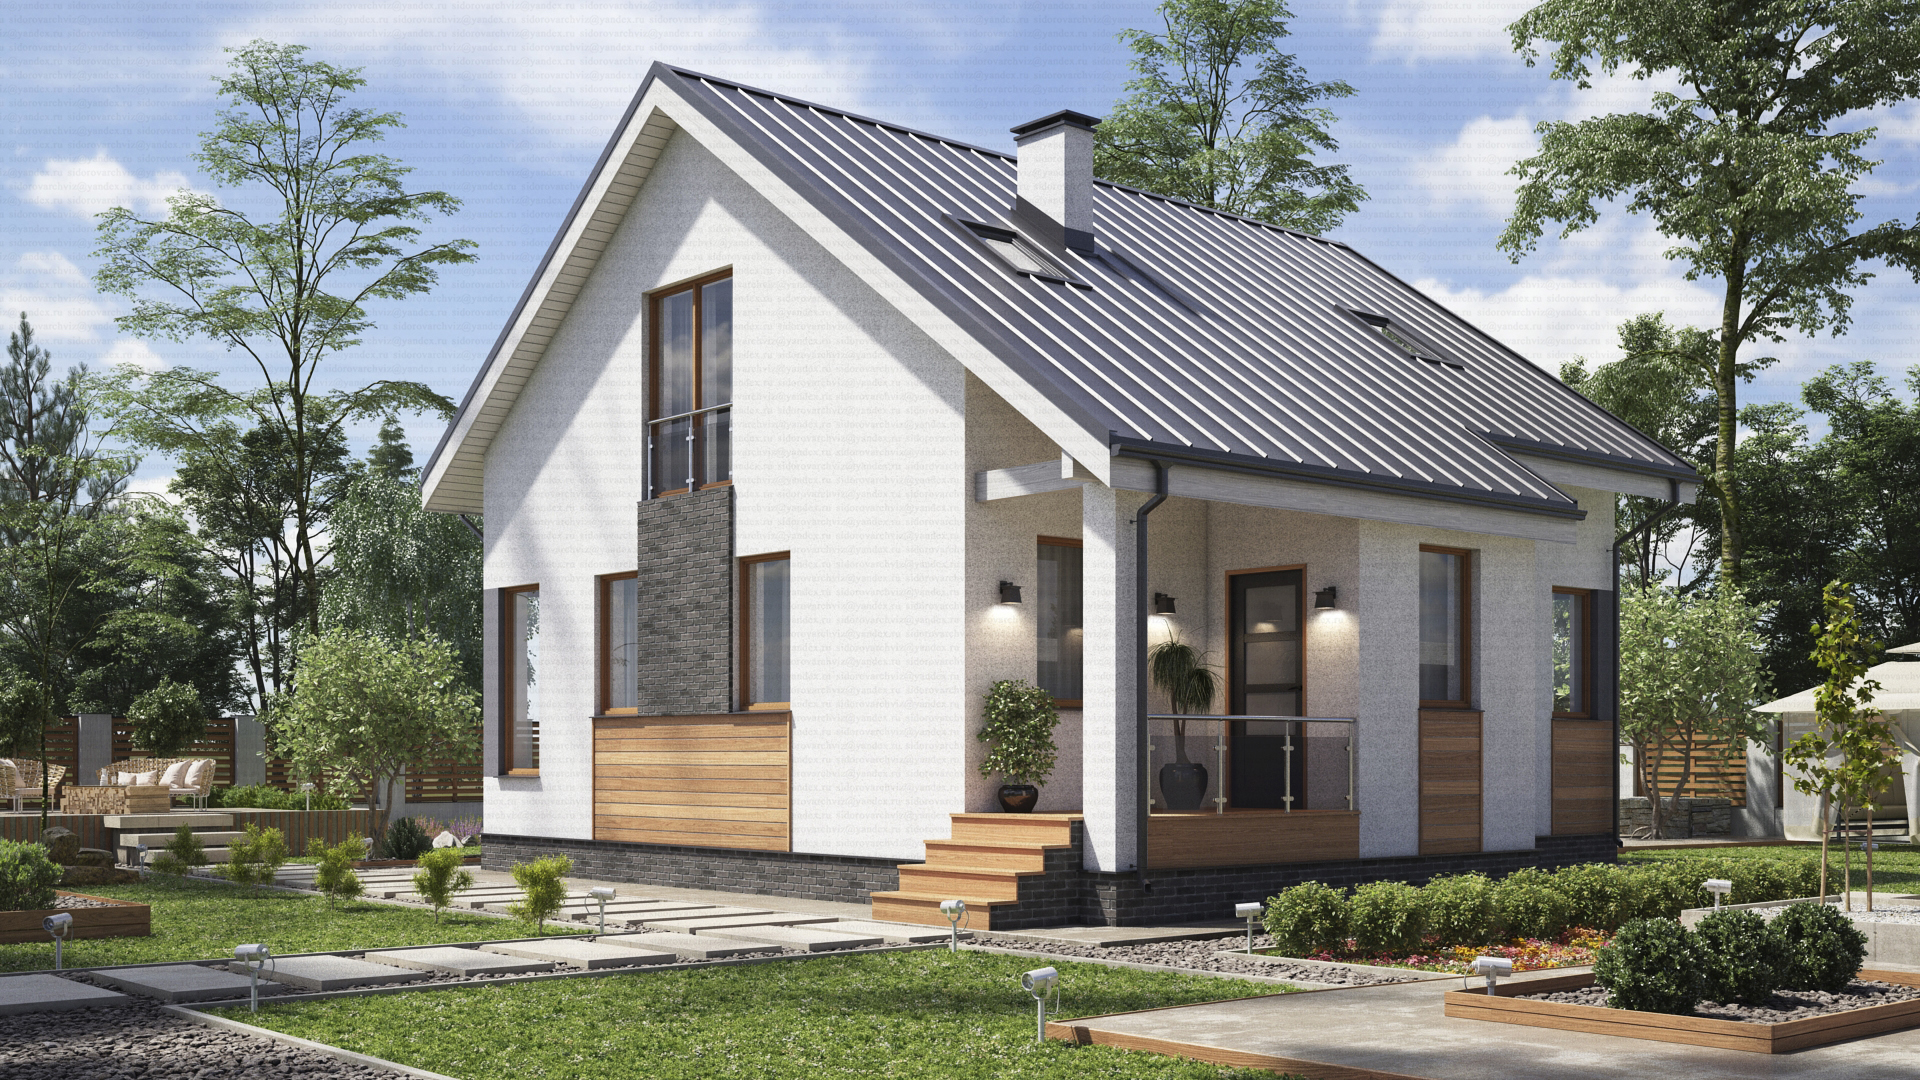 RotenStein_small_house